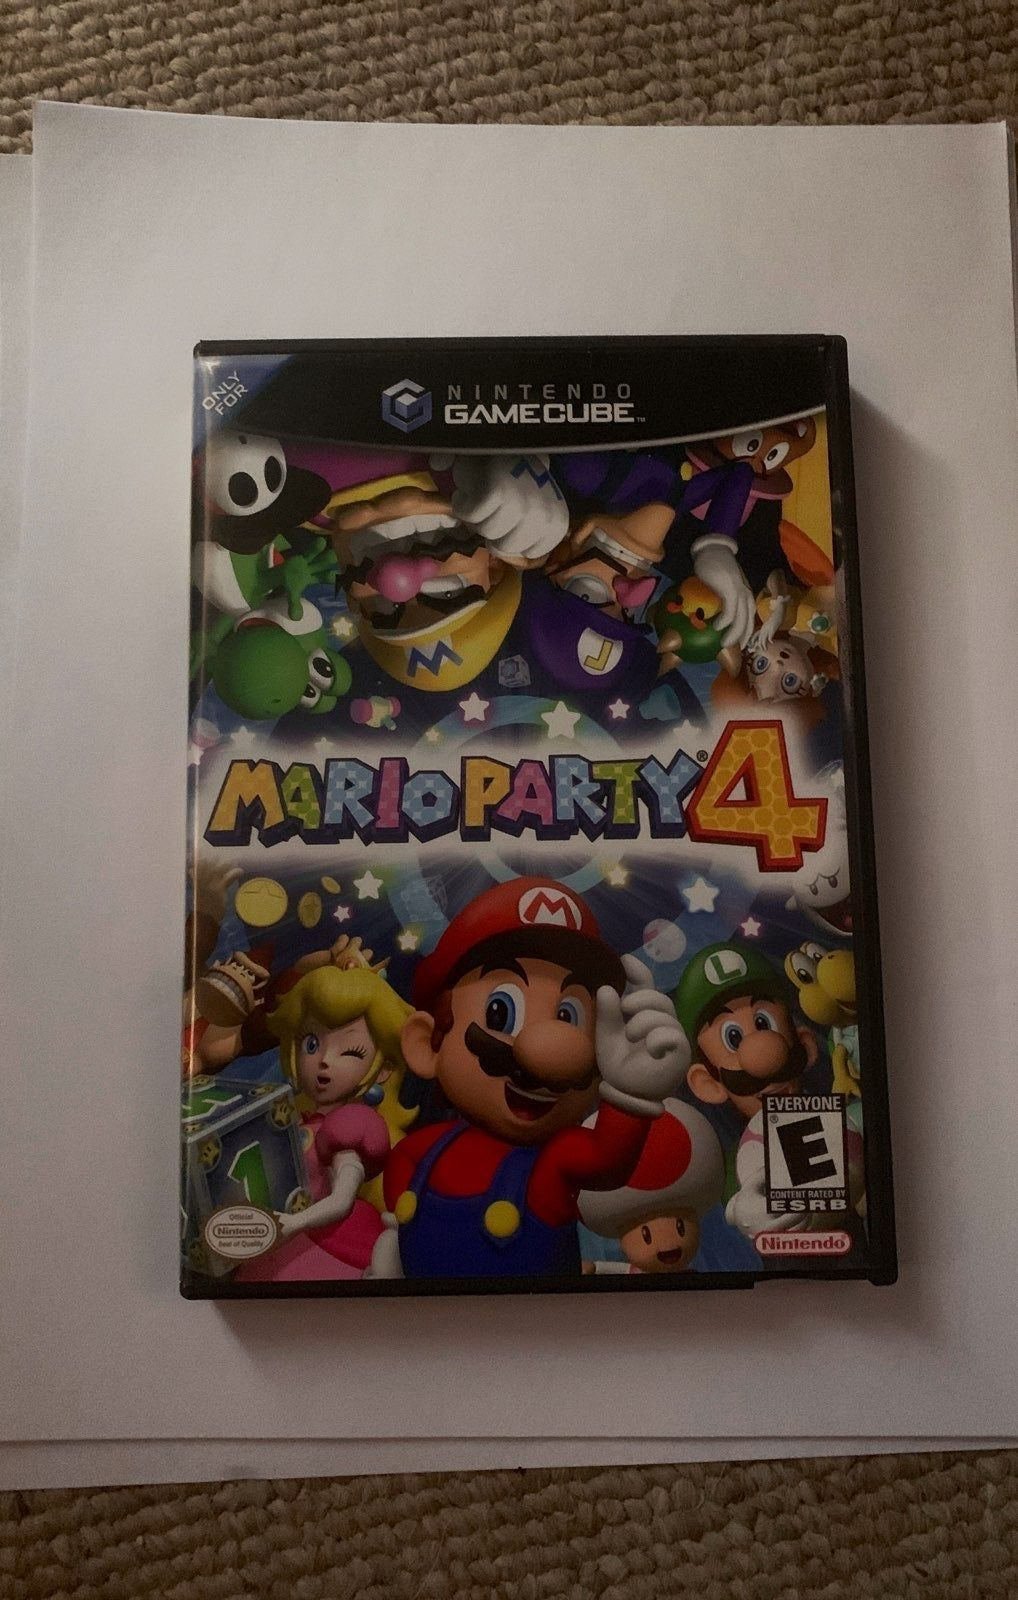 Mario Party 4 For Nintendo Gamecube Tested To Work With Instruction Booklet Included Mario Party Gamecube Party